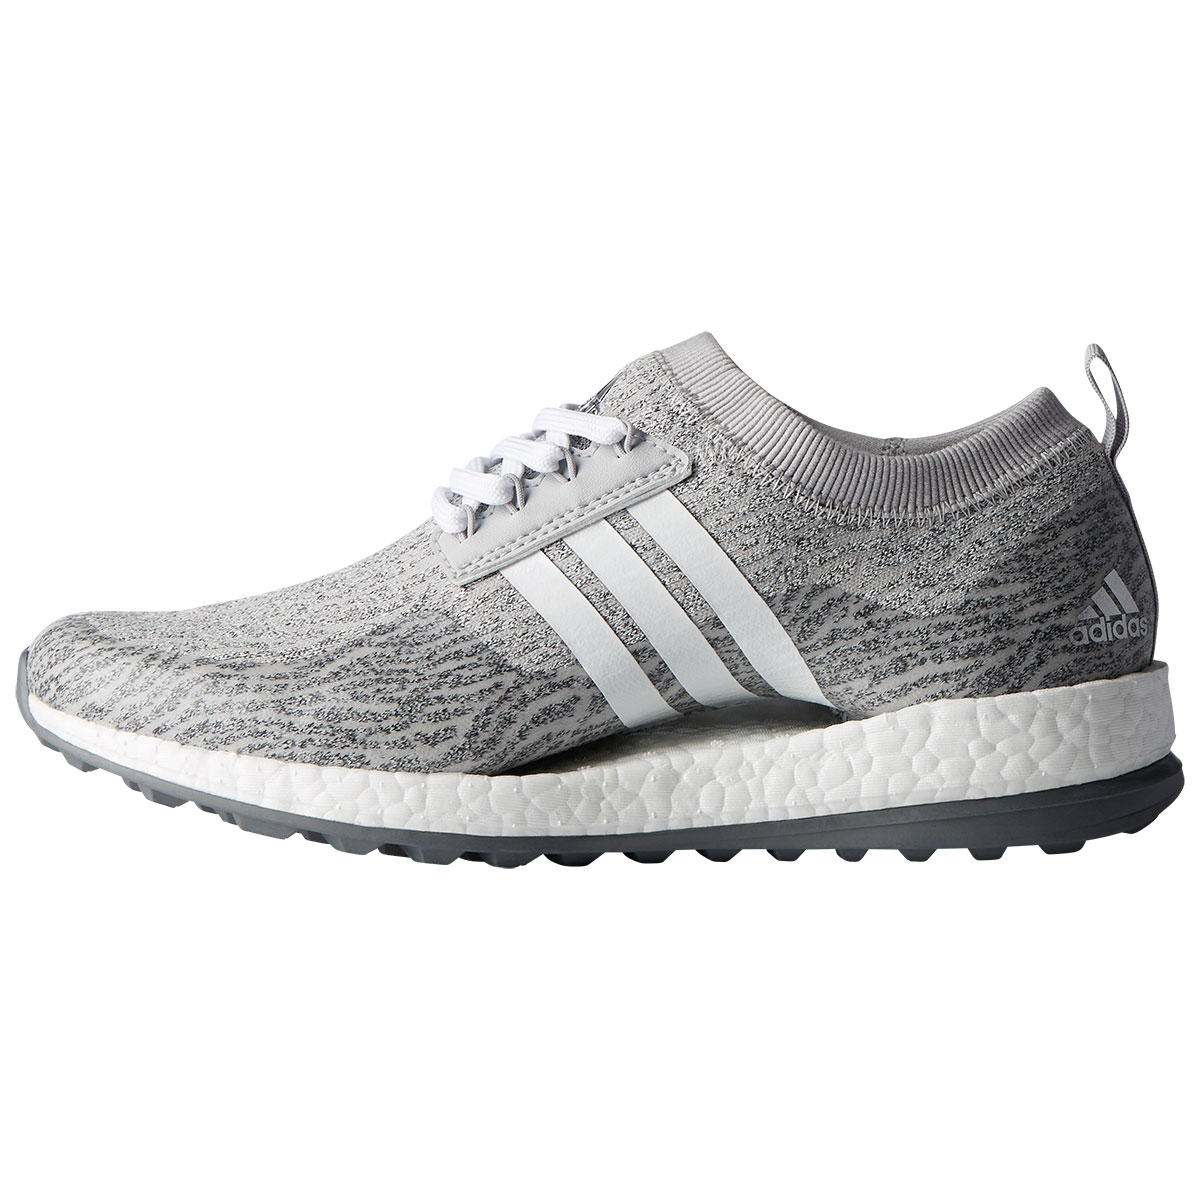 Adidas Womens Pure Boost XG Spikeless Golf Shoe - Grey